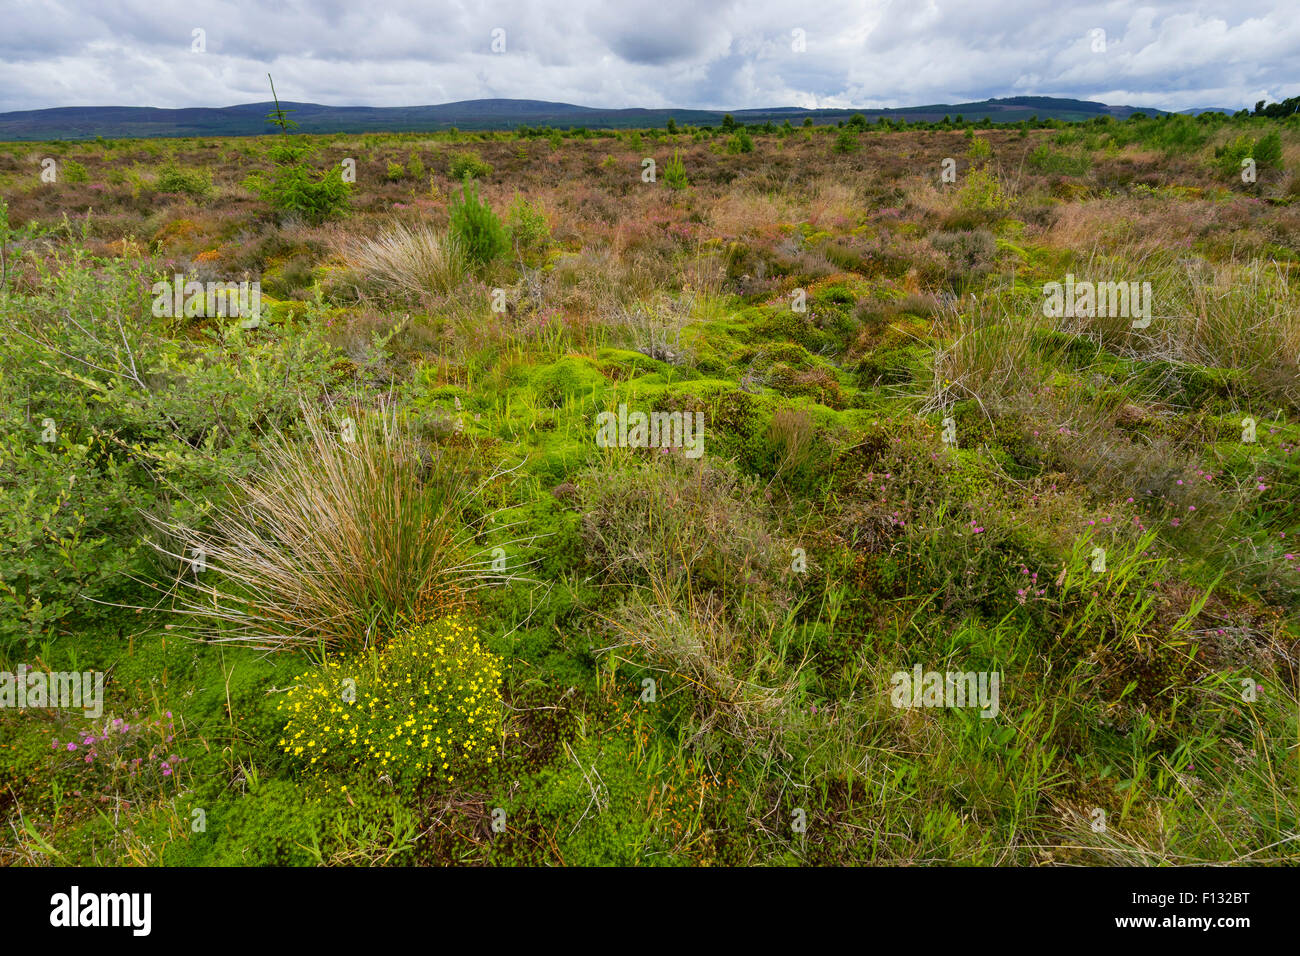 View of natural moorland at Culloden Moor former battlefield in Highland, Scotland - Stock Image